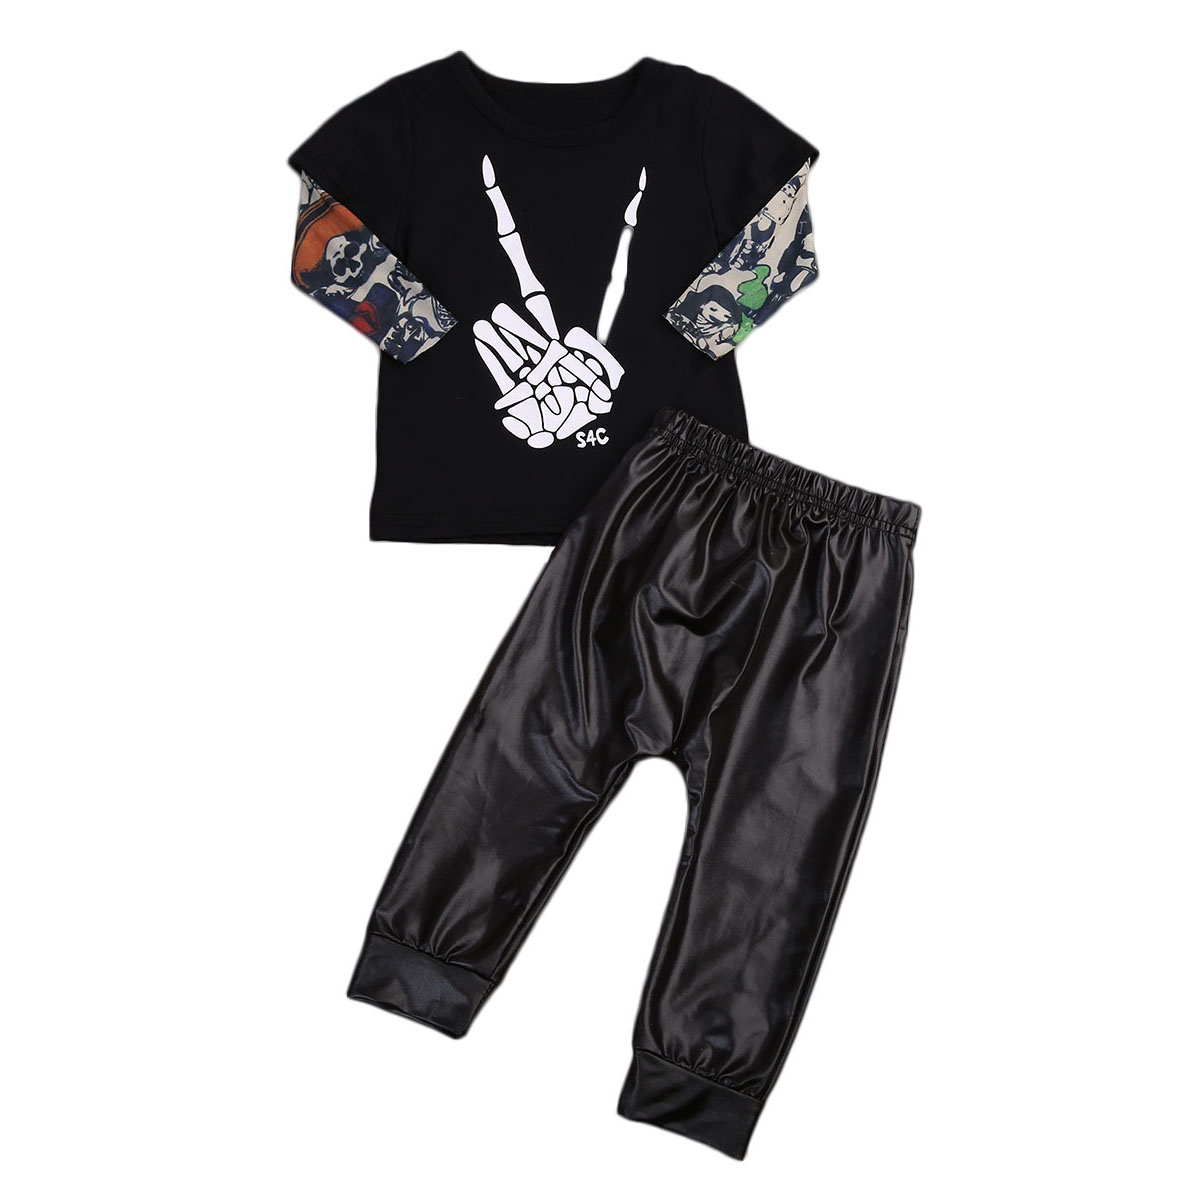 2017 Fashion Newborn Infant Baby Boys Gentleman Clothes Long Sleeve T-Shirt Tops+PU Leather Pants 2pcs Baby Cool Sets